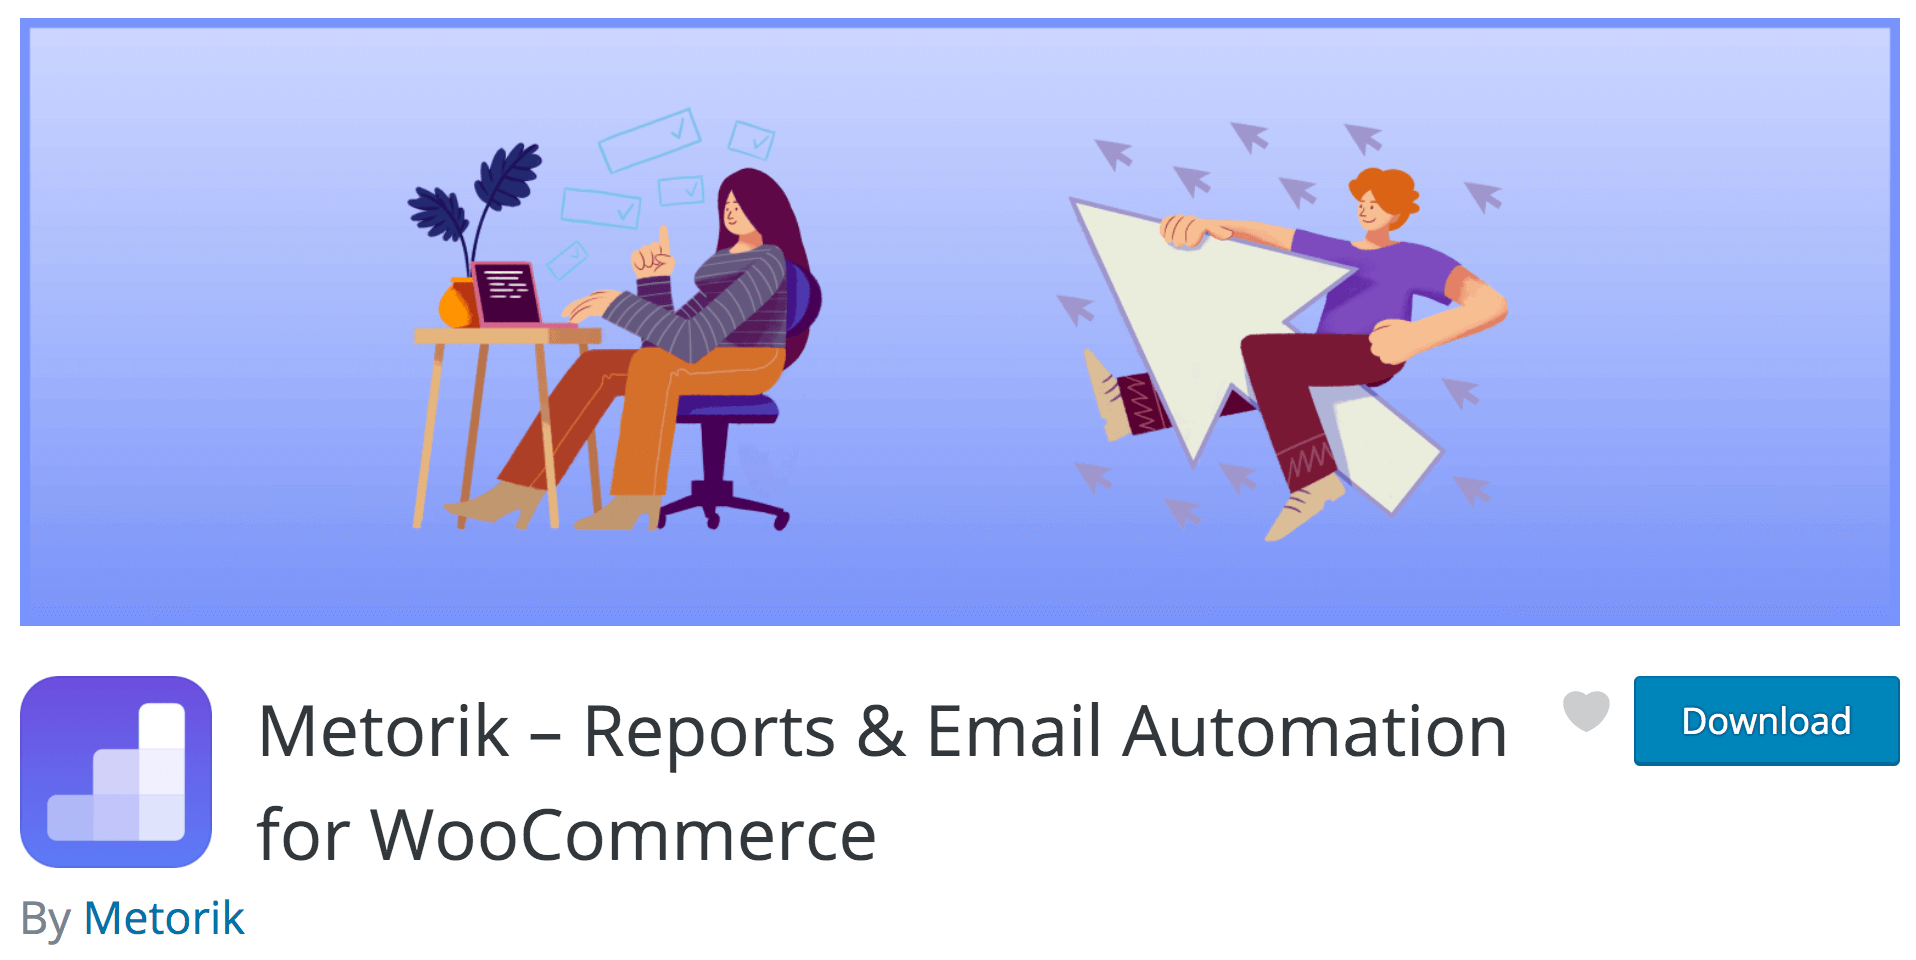 Metorik – Reports & Email Automation for WooCommerce